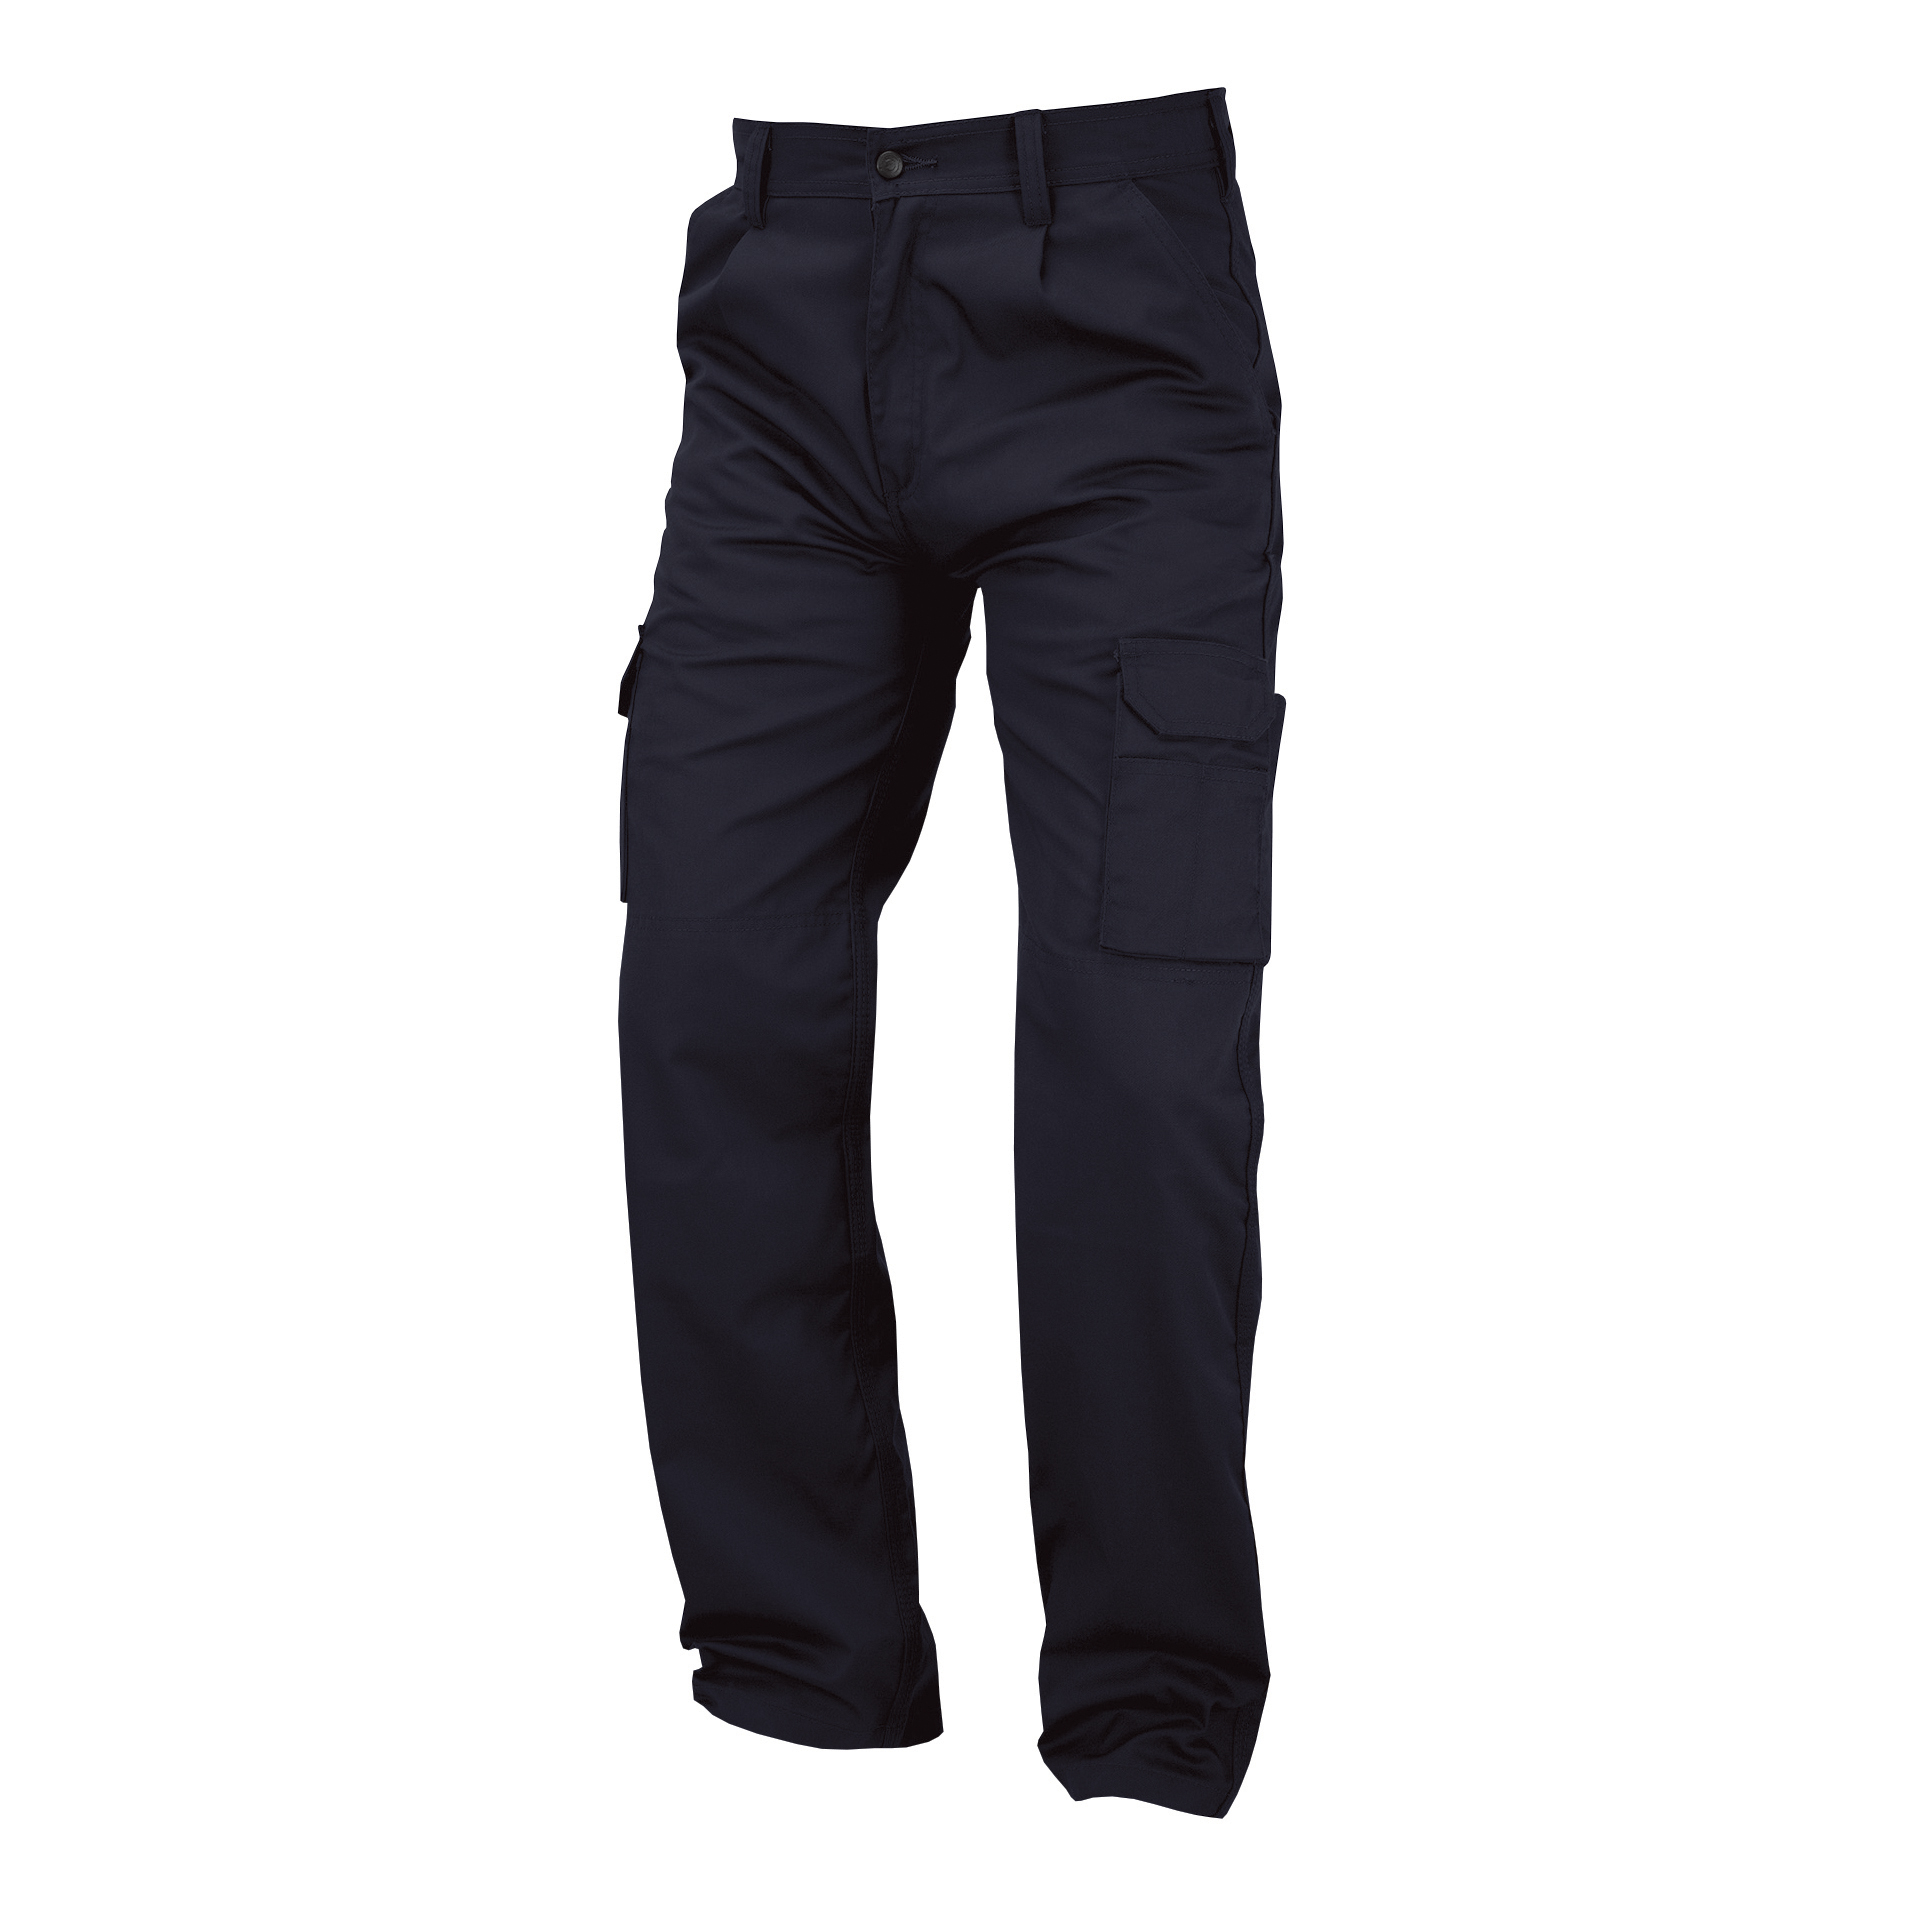 Combat Trousers Multifunctional 44in Regular Navy Blue Ref PCTHWN44 *Approx 3 Day Leadtime*